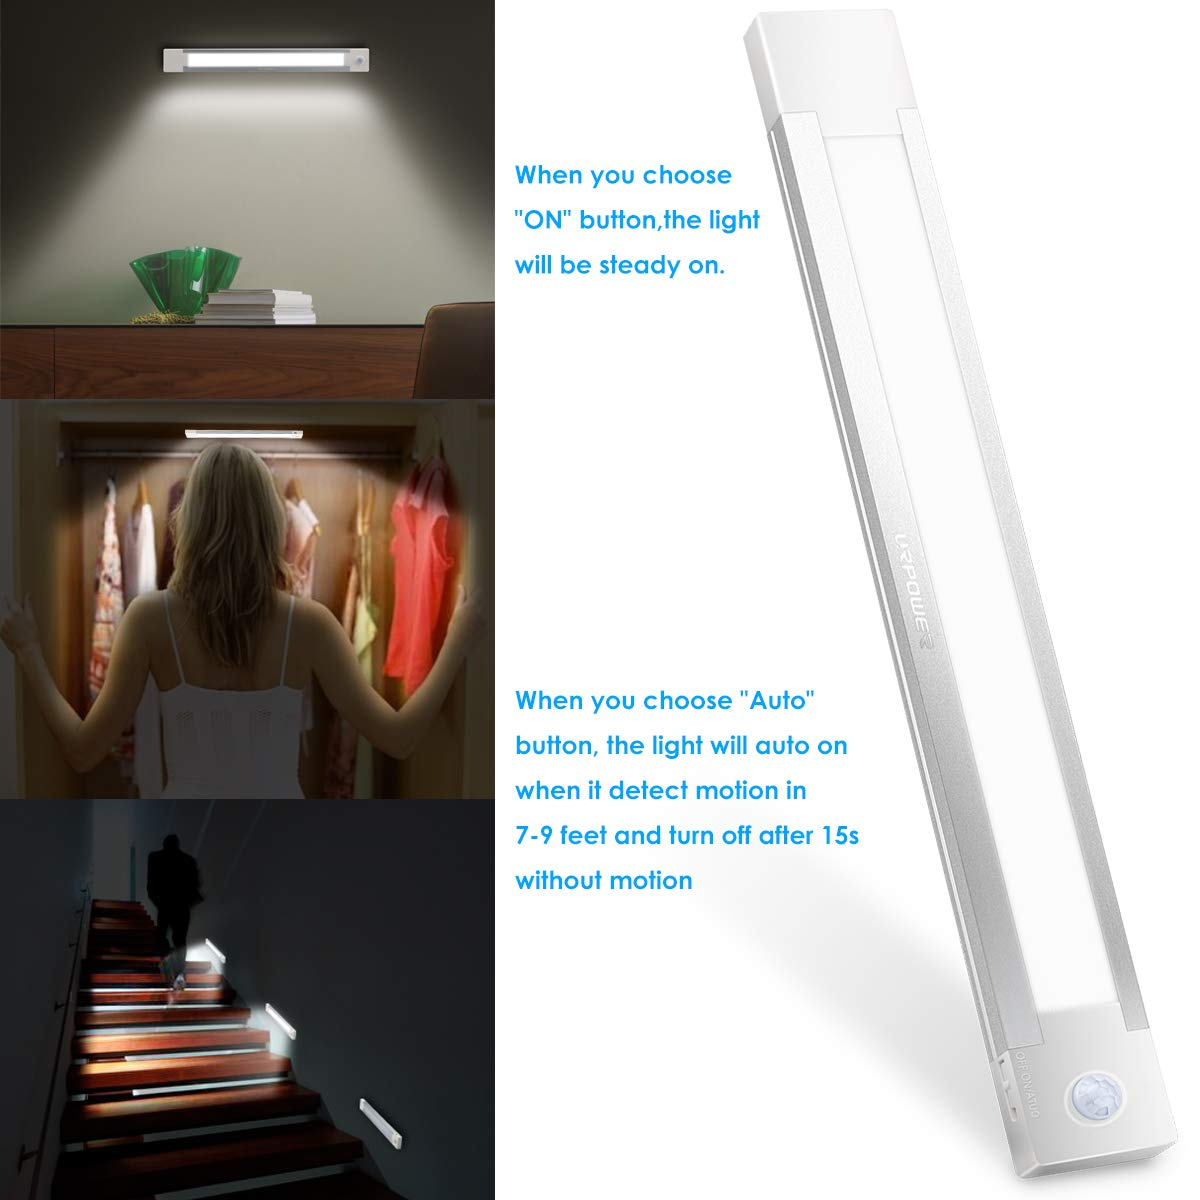 URPOWER Motion Sensor Light, Rechargeable Closet Light Wireless Motion Sensor LED Night Light Stick-Anywhere Motion Sensor Closet Lights Stick up Wall Lights for Closet Bathroom Hallway (Cool White) by URPOWER (Image #4)